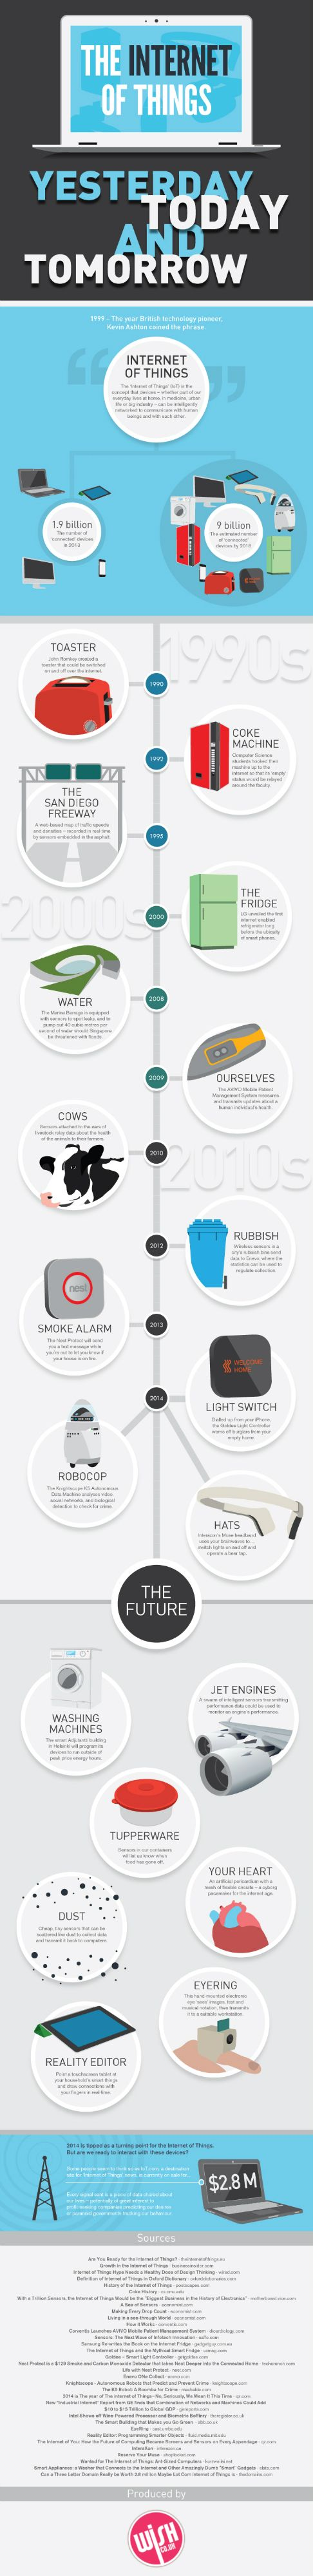 The Internet of Things: Yesterday, Today and Tomorrow